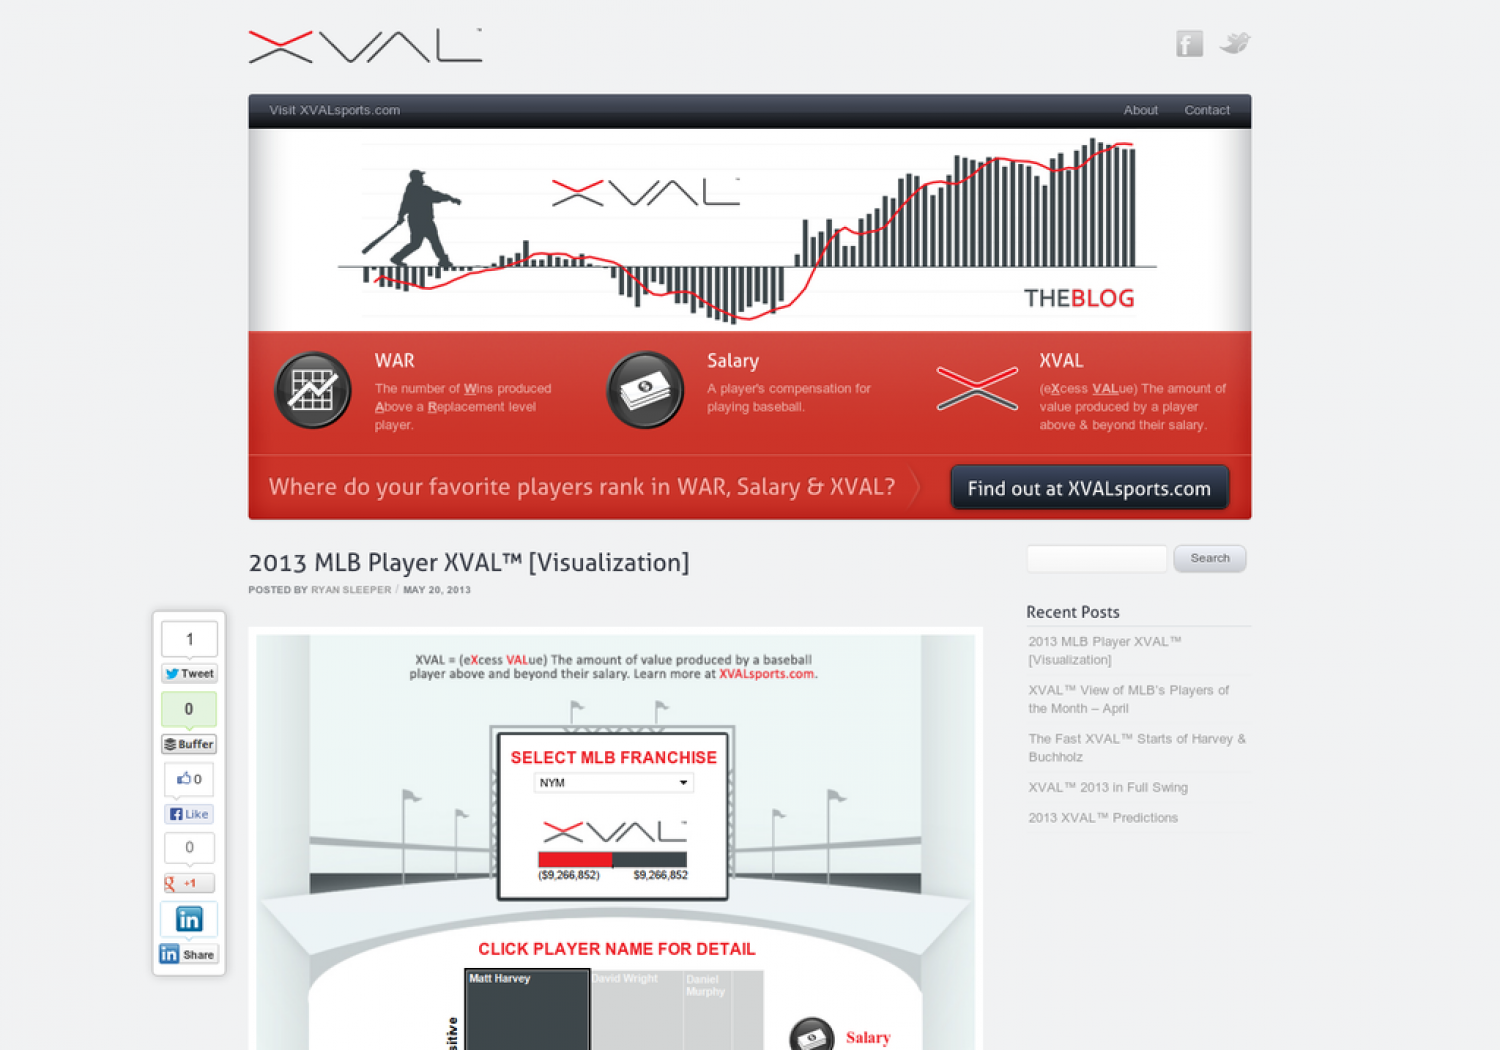 2013 MLB Player XVAL Infographic